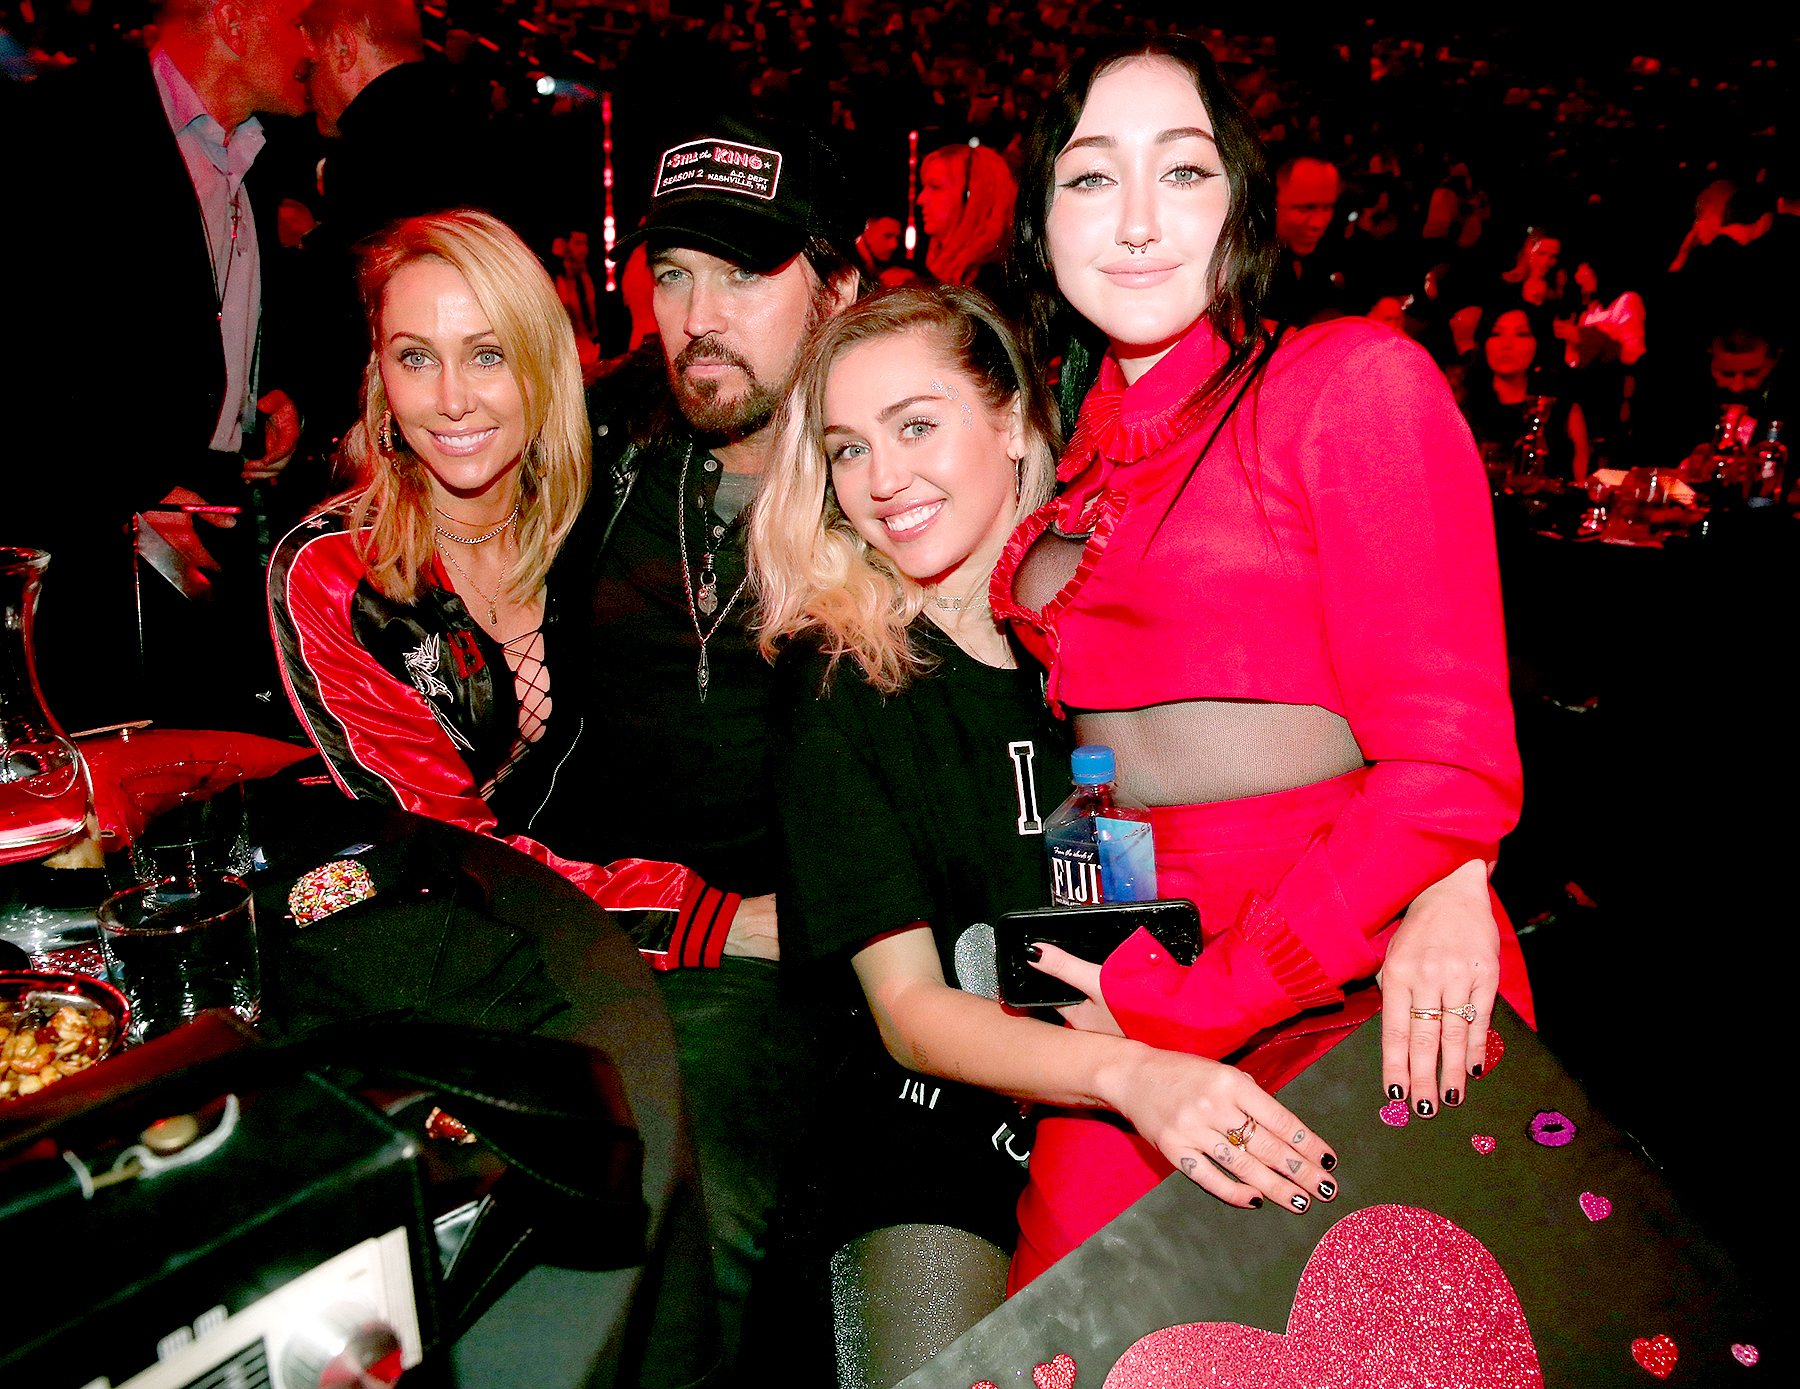 Tish Cyrus, Billy Ray Cyrus, Miley Cyrus, and Noah Cyrus pose with a sign reading 'I heart Noah Cyrus' during the 2017 iHeartRadio Music Awards which broadcast live on Turner's TBS, TNT, and truTV at The Forum on March 5, 2017 in Inglewood, California.